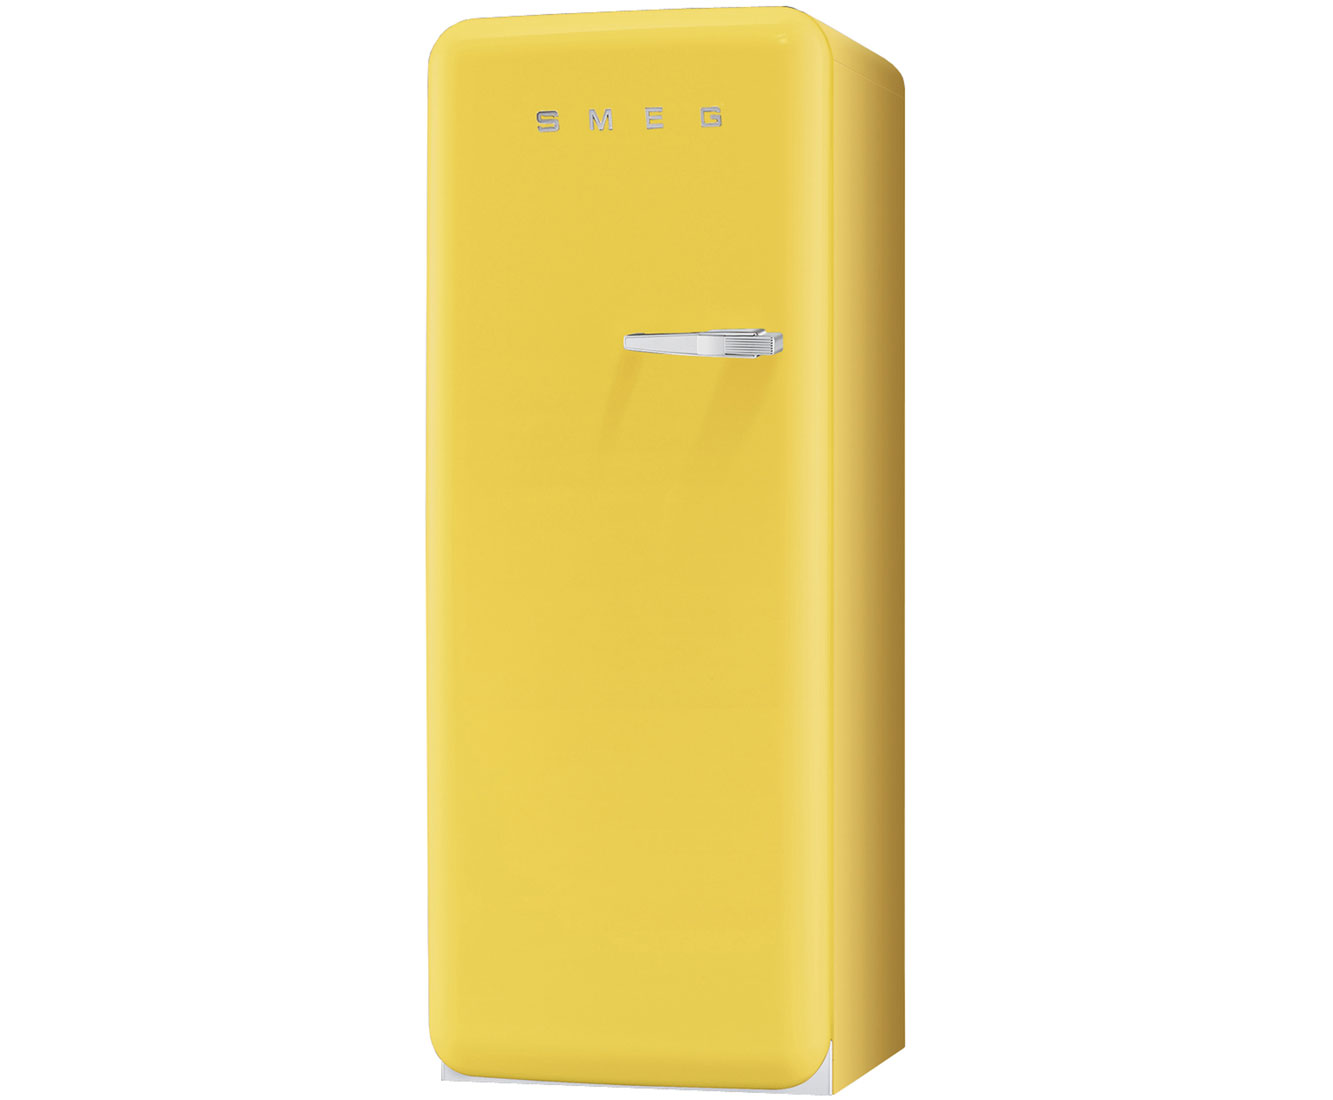 Yellow Fridge Freezer Buy Cheap Smeg Refrigerator Compare Fridges Prices For